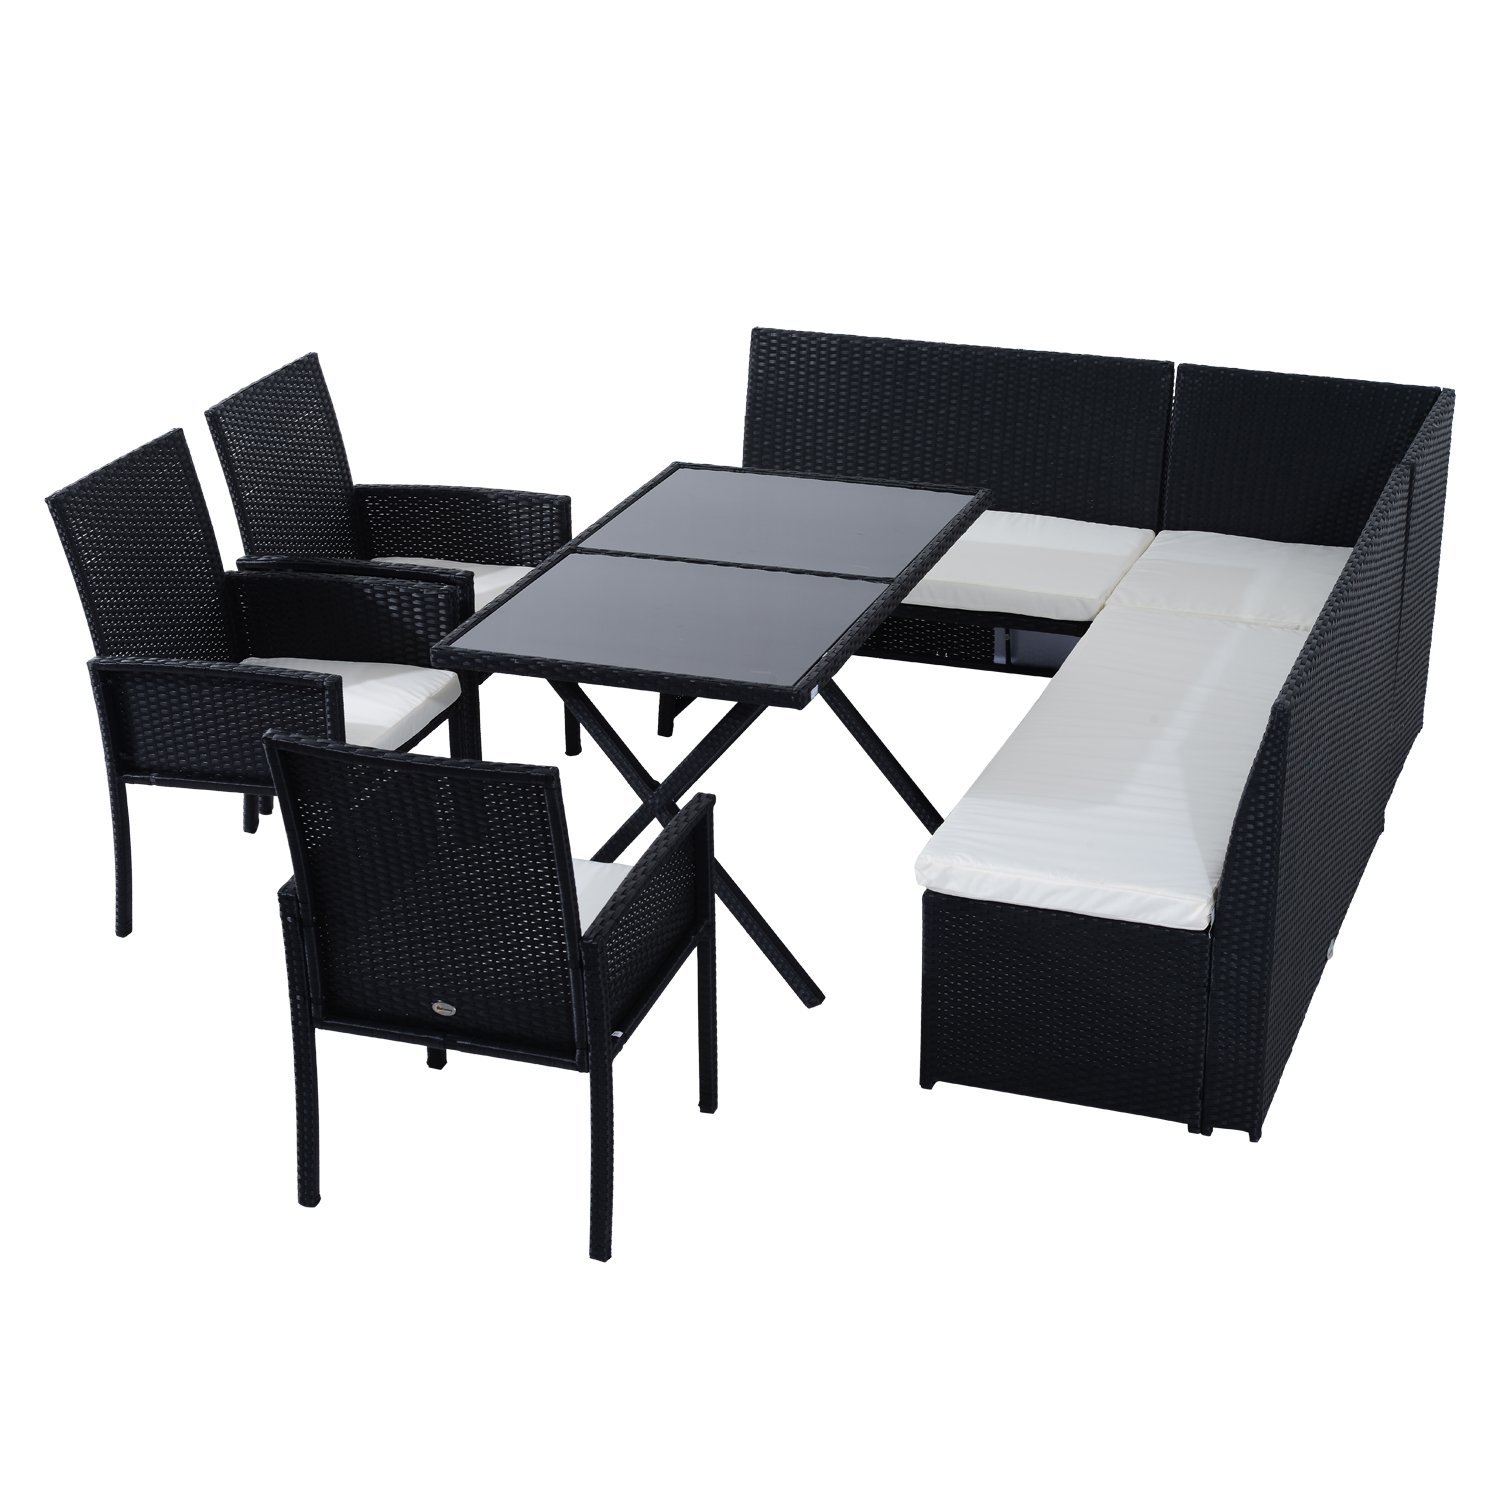 Outdoor Sofa And Dining Table